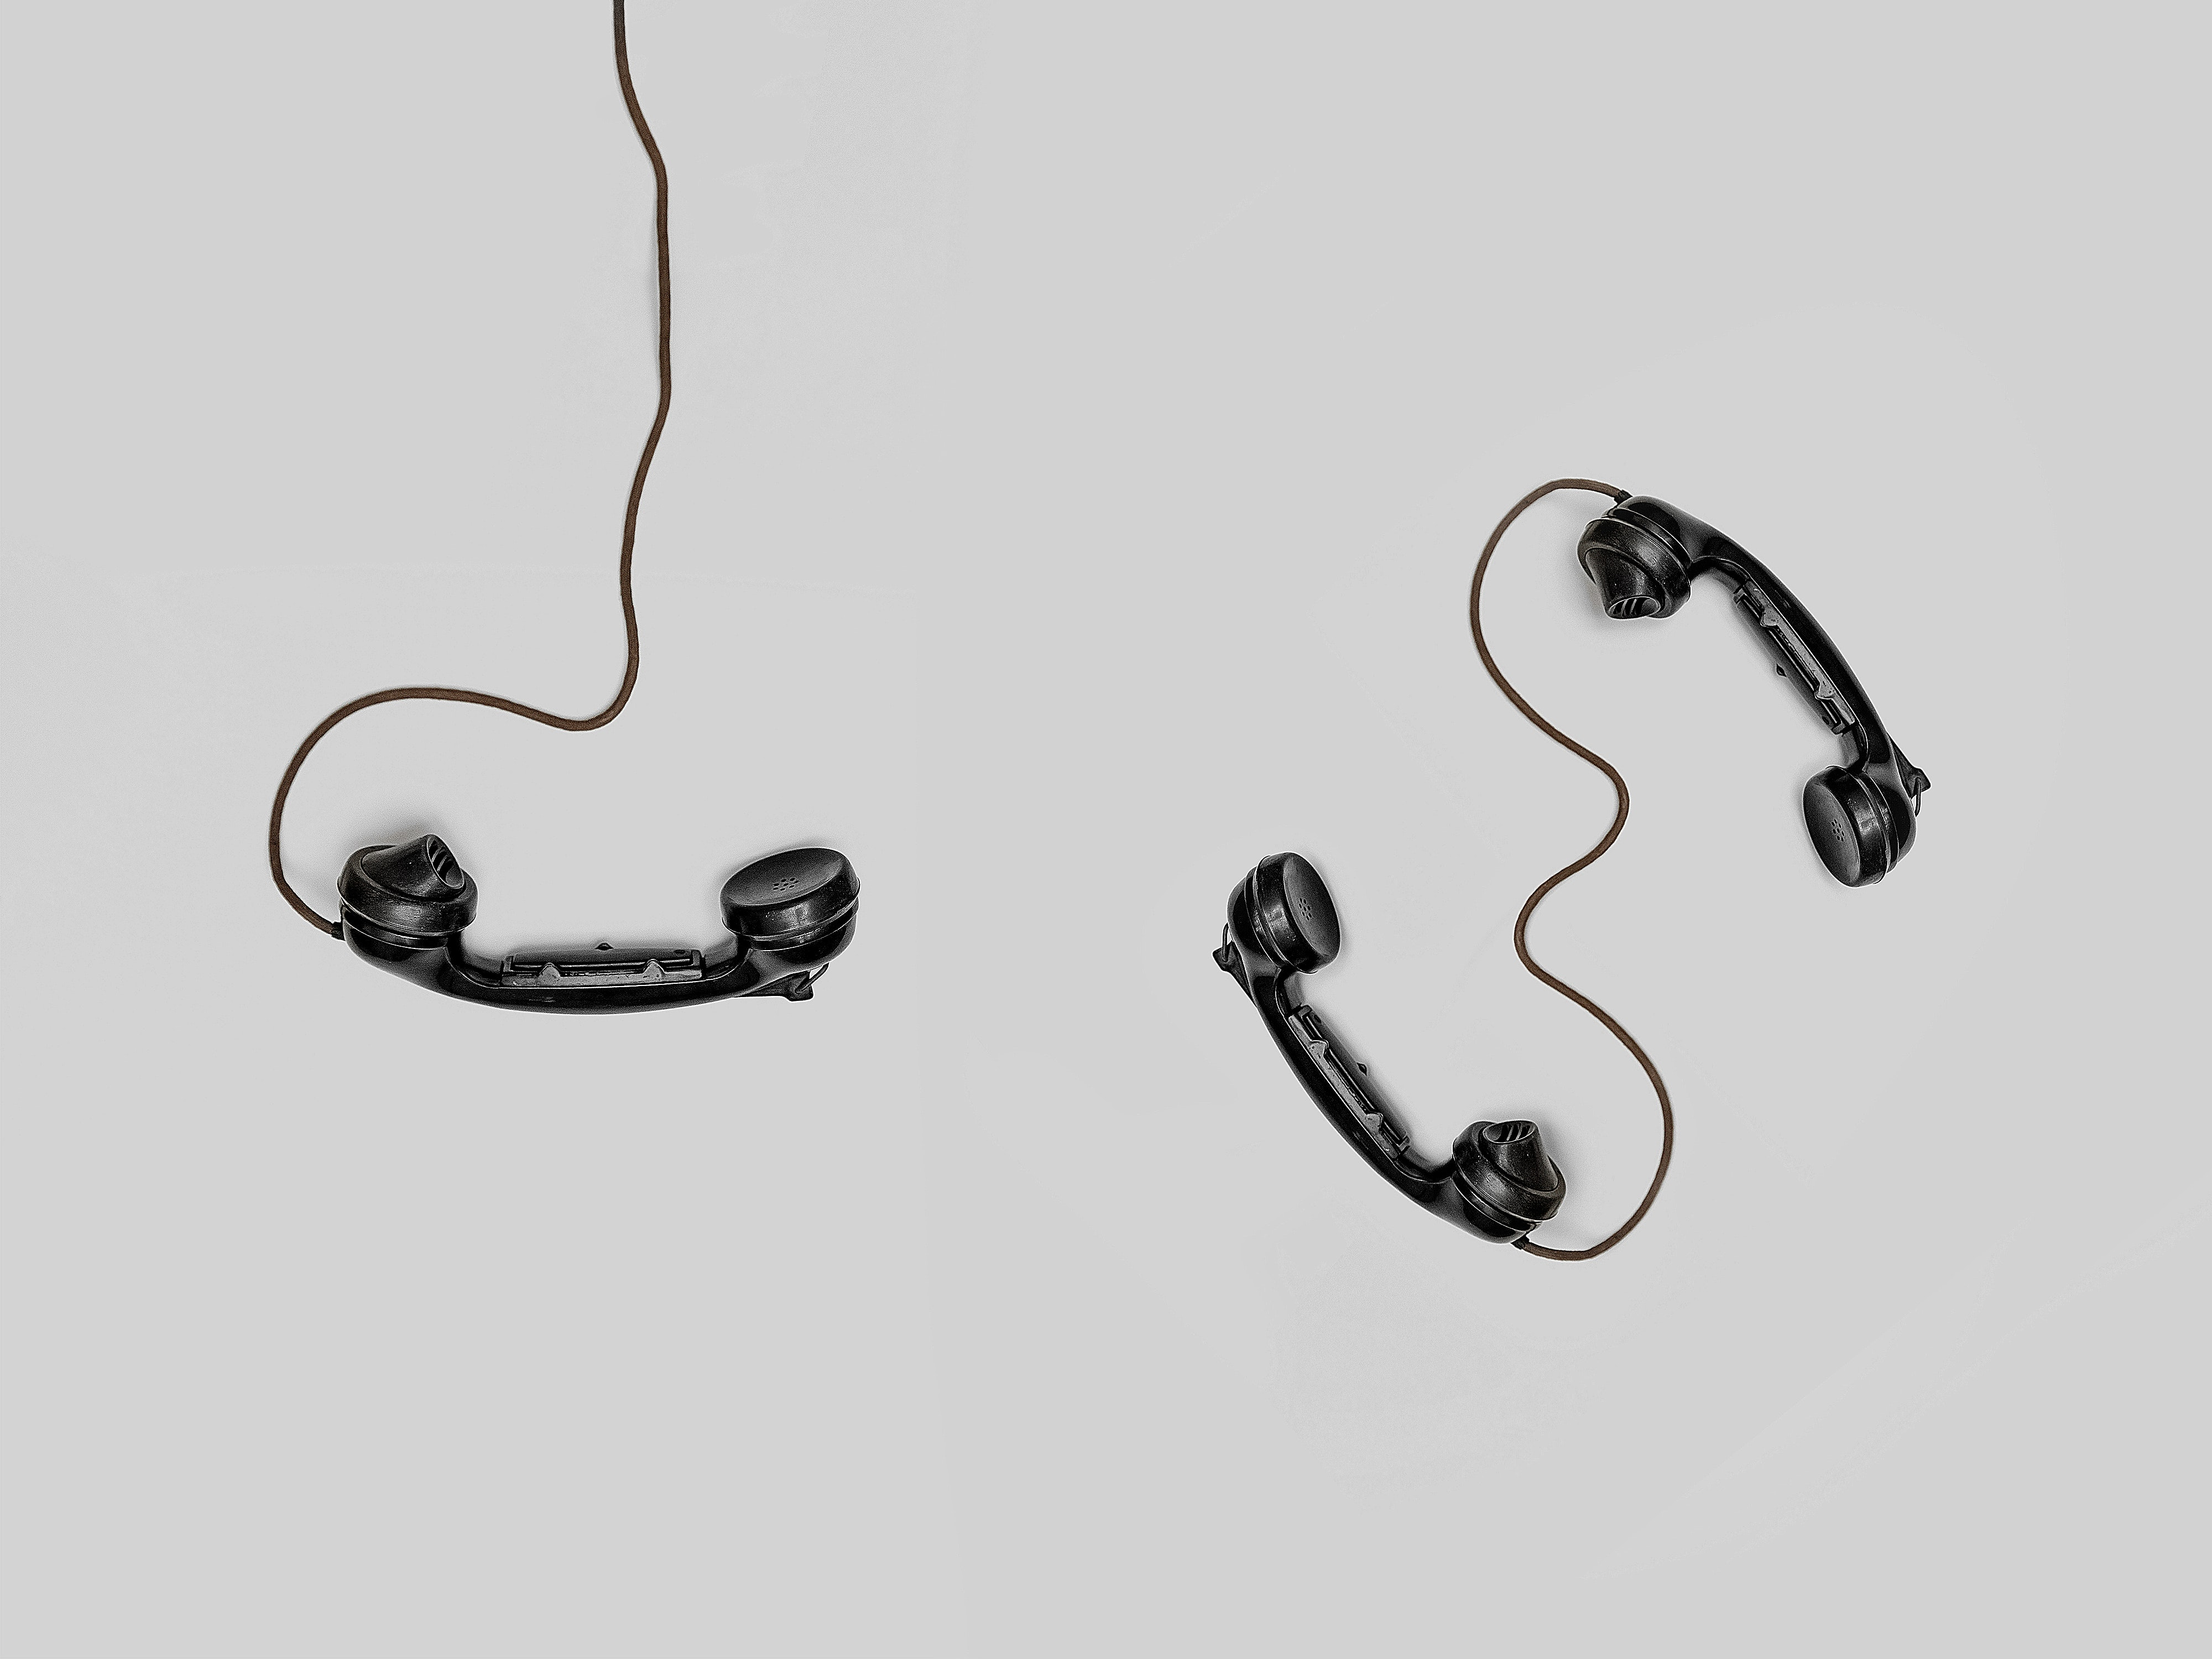 118274 download wallpaper Minimalism, Vintage, Cable, Bw, Chb, Wire, Telephone, Telephones, Handsets, Classical screensavers and pictures for free